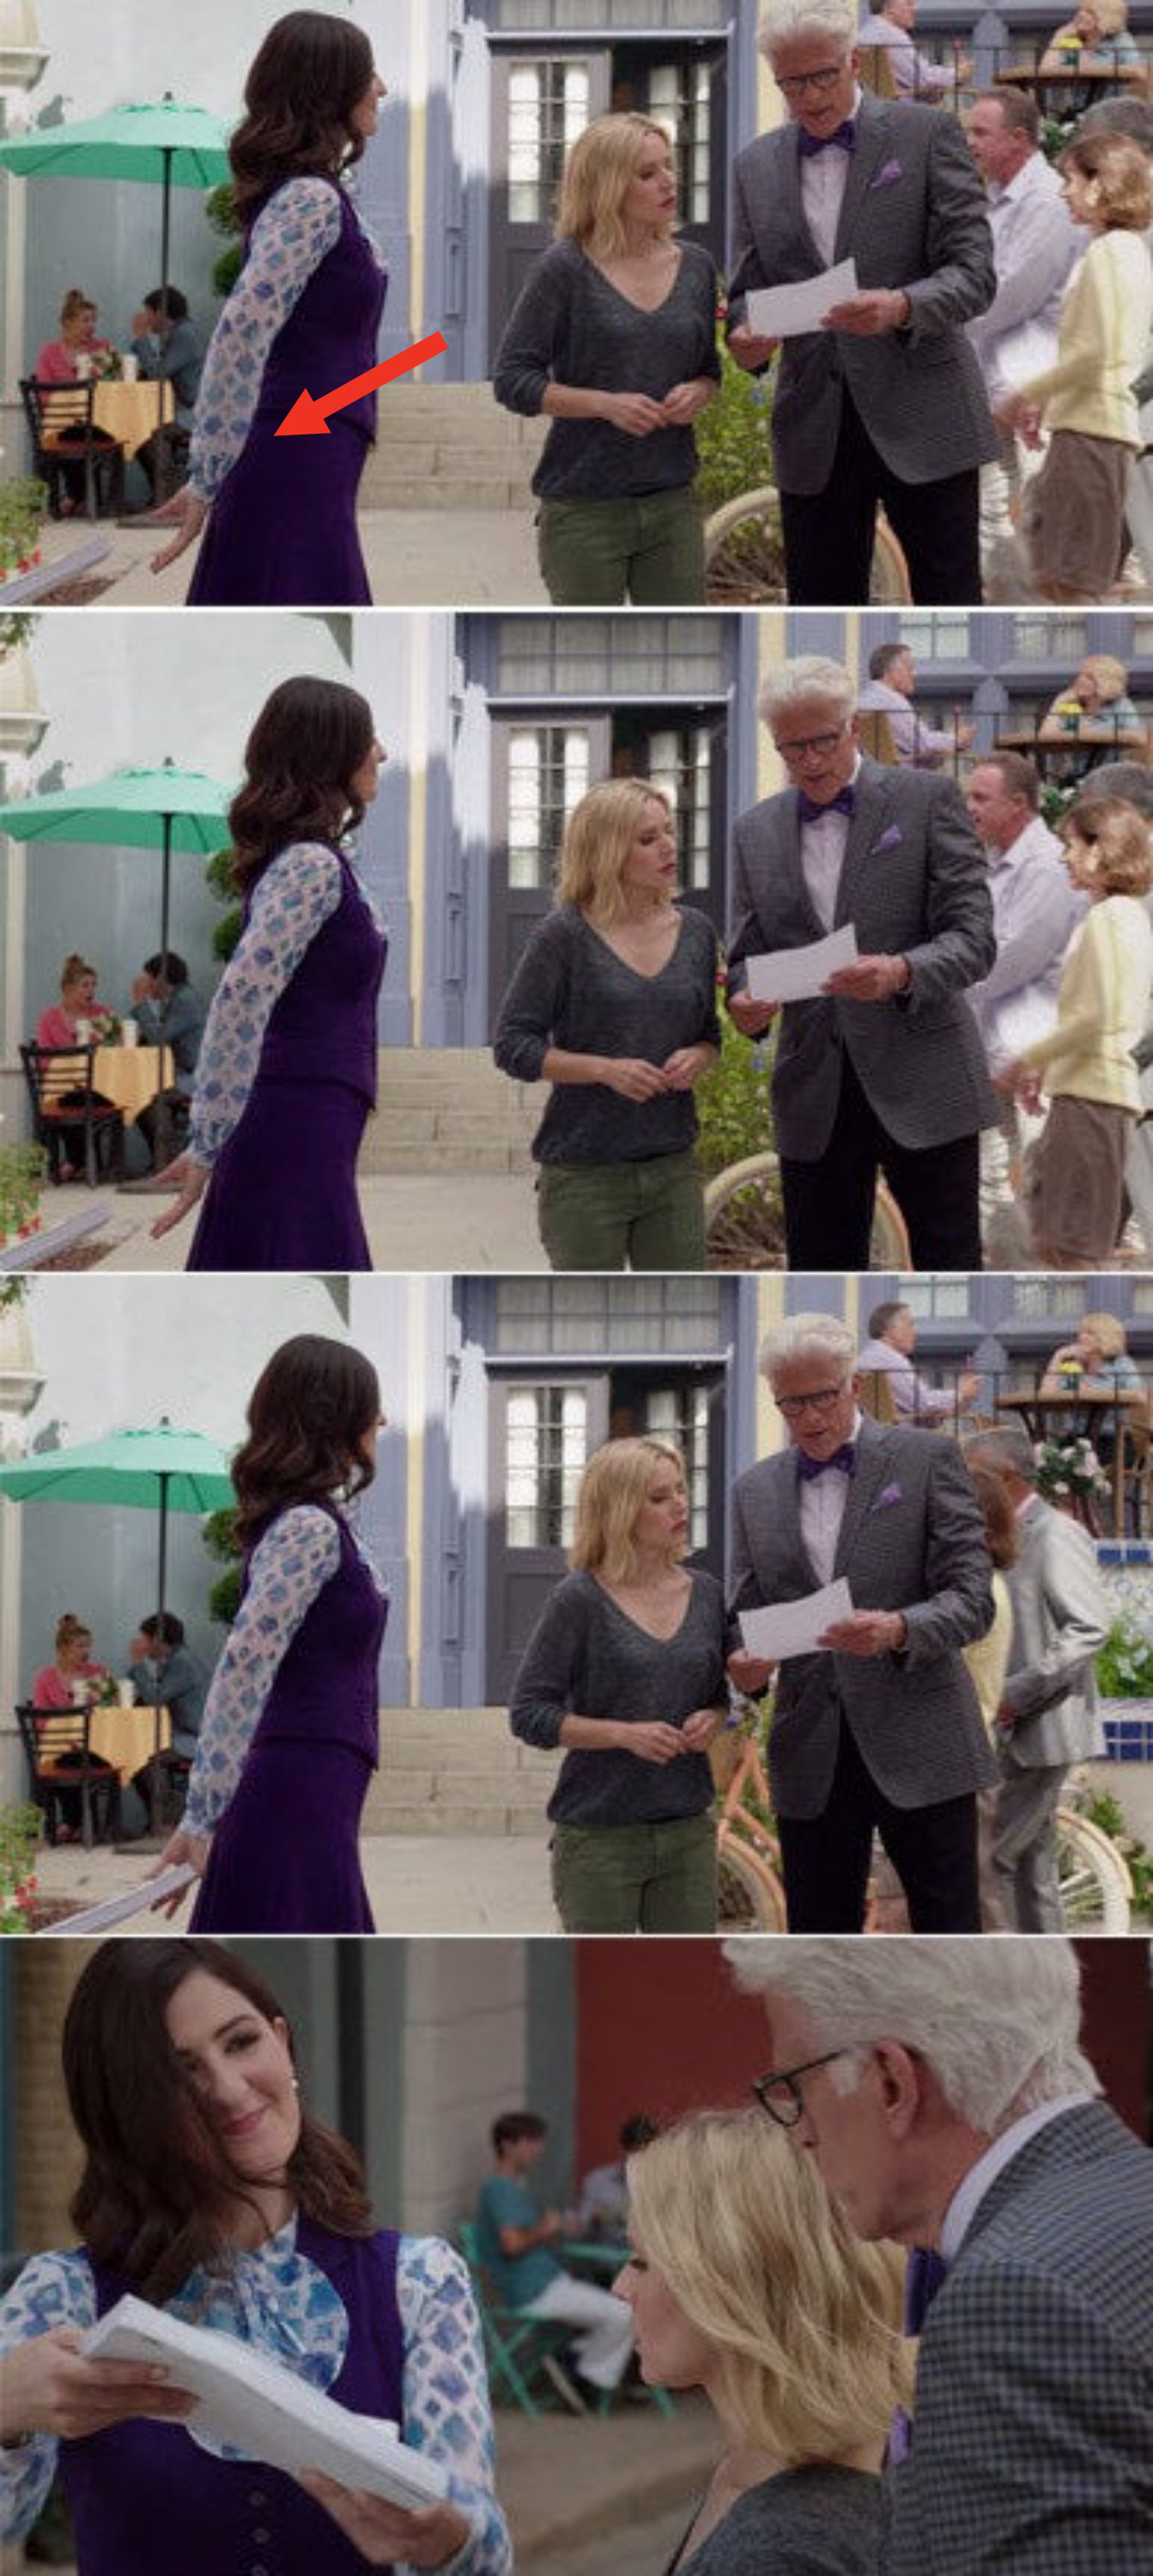 Janet being handed a stack of papers from the bottom of the screen and then handing them to Michael